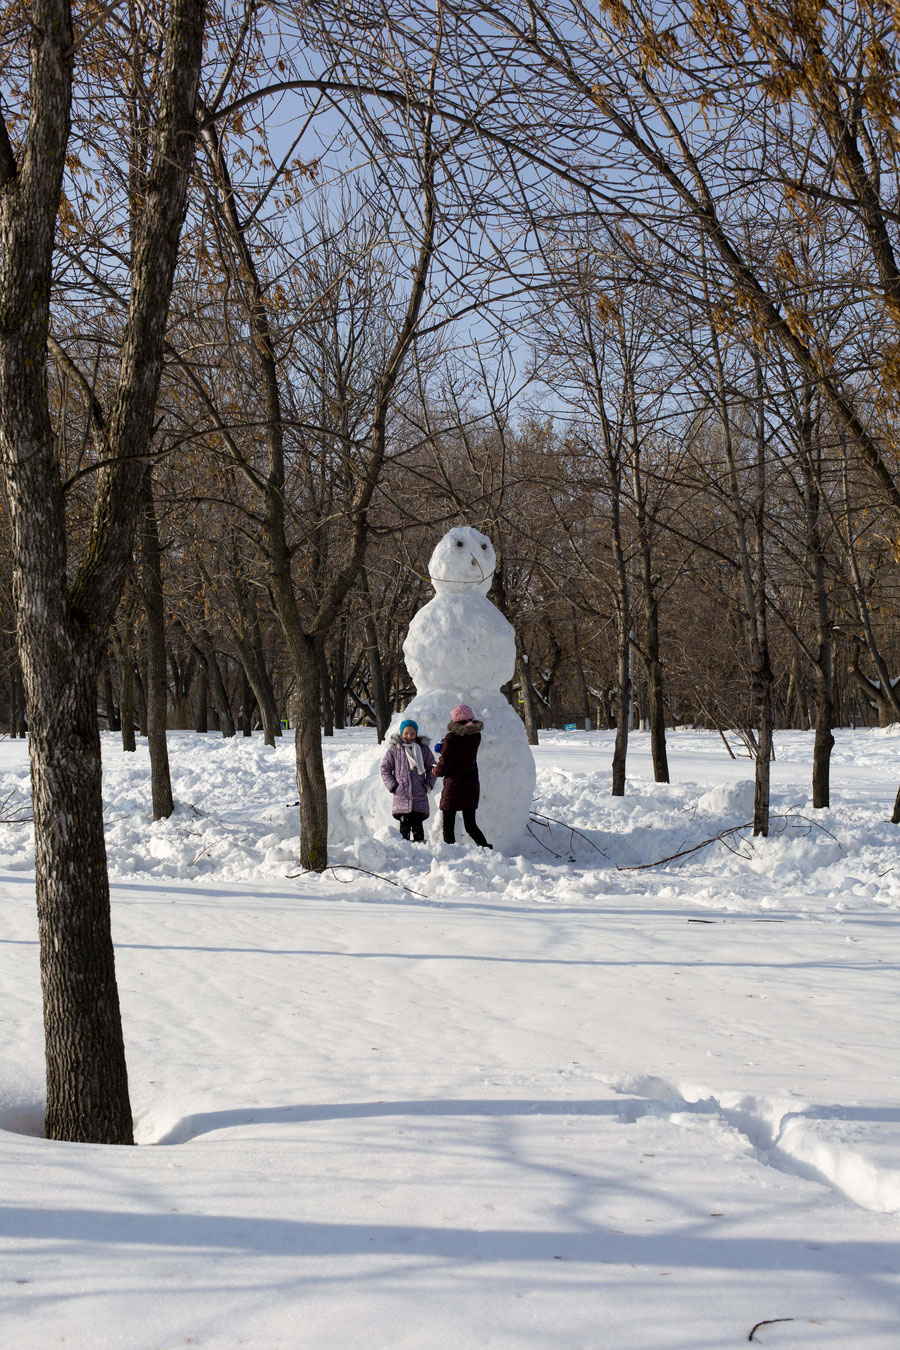 The biggest snowman, Samara, Russia